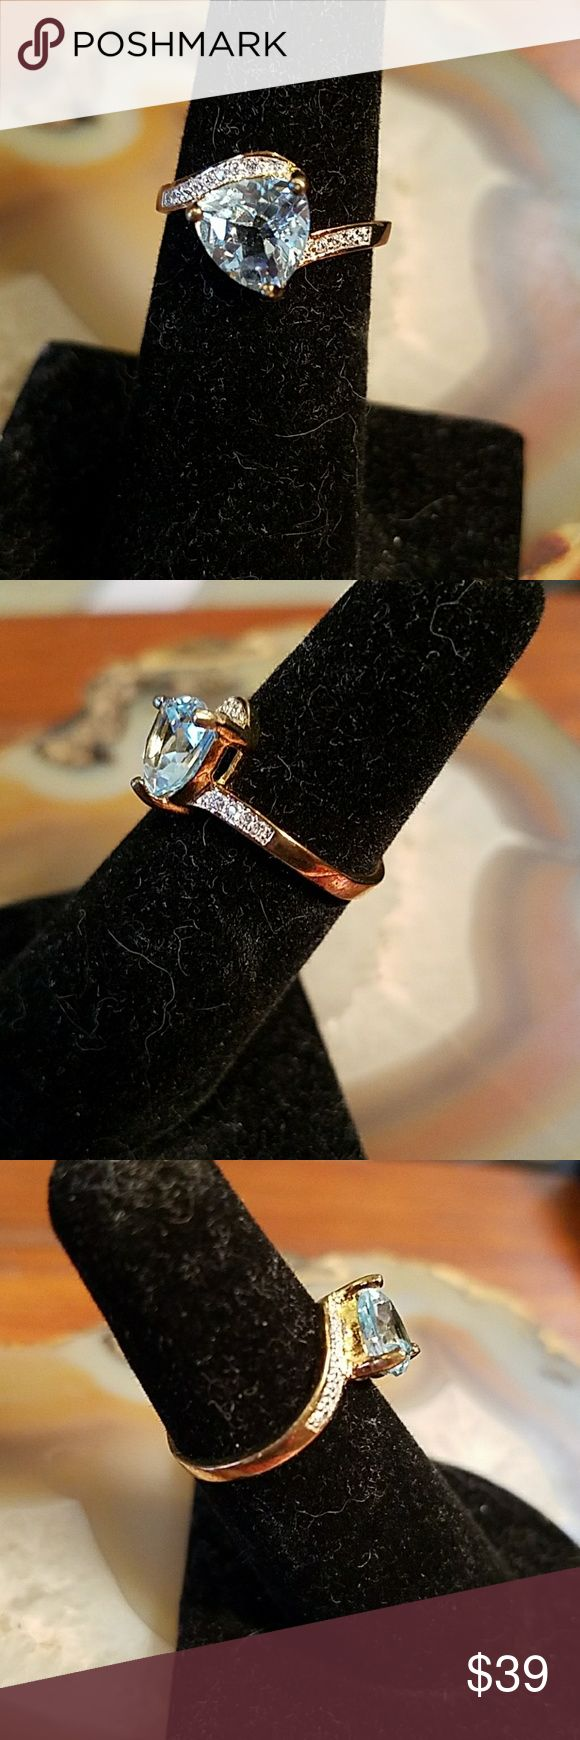 Gold ober 925 SS Sky blue topaz ring, size 6 Gold plated over .925 sterling silver ski blue topsz  ~~size 6  ~~stamped S.925  ~~good condition, miner wear not noticeable  Make an offer! Or add to bundle & I'll make u a private offer w no pressure or obligation at all Jewelry Rings